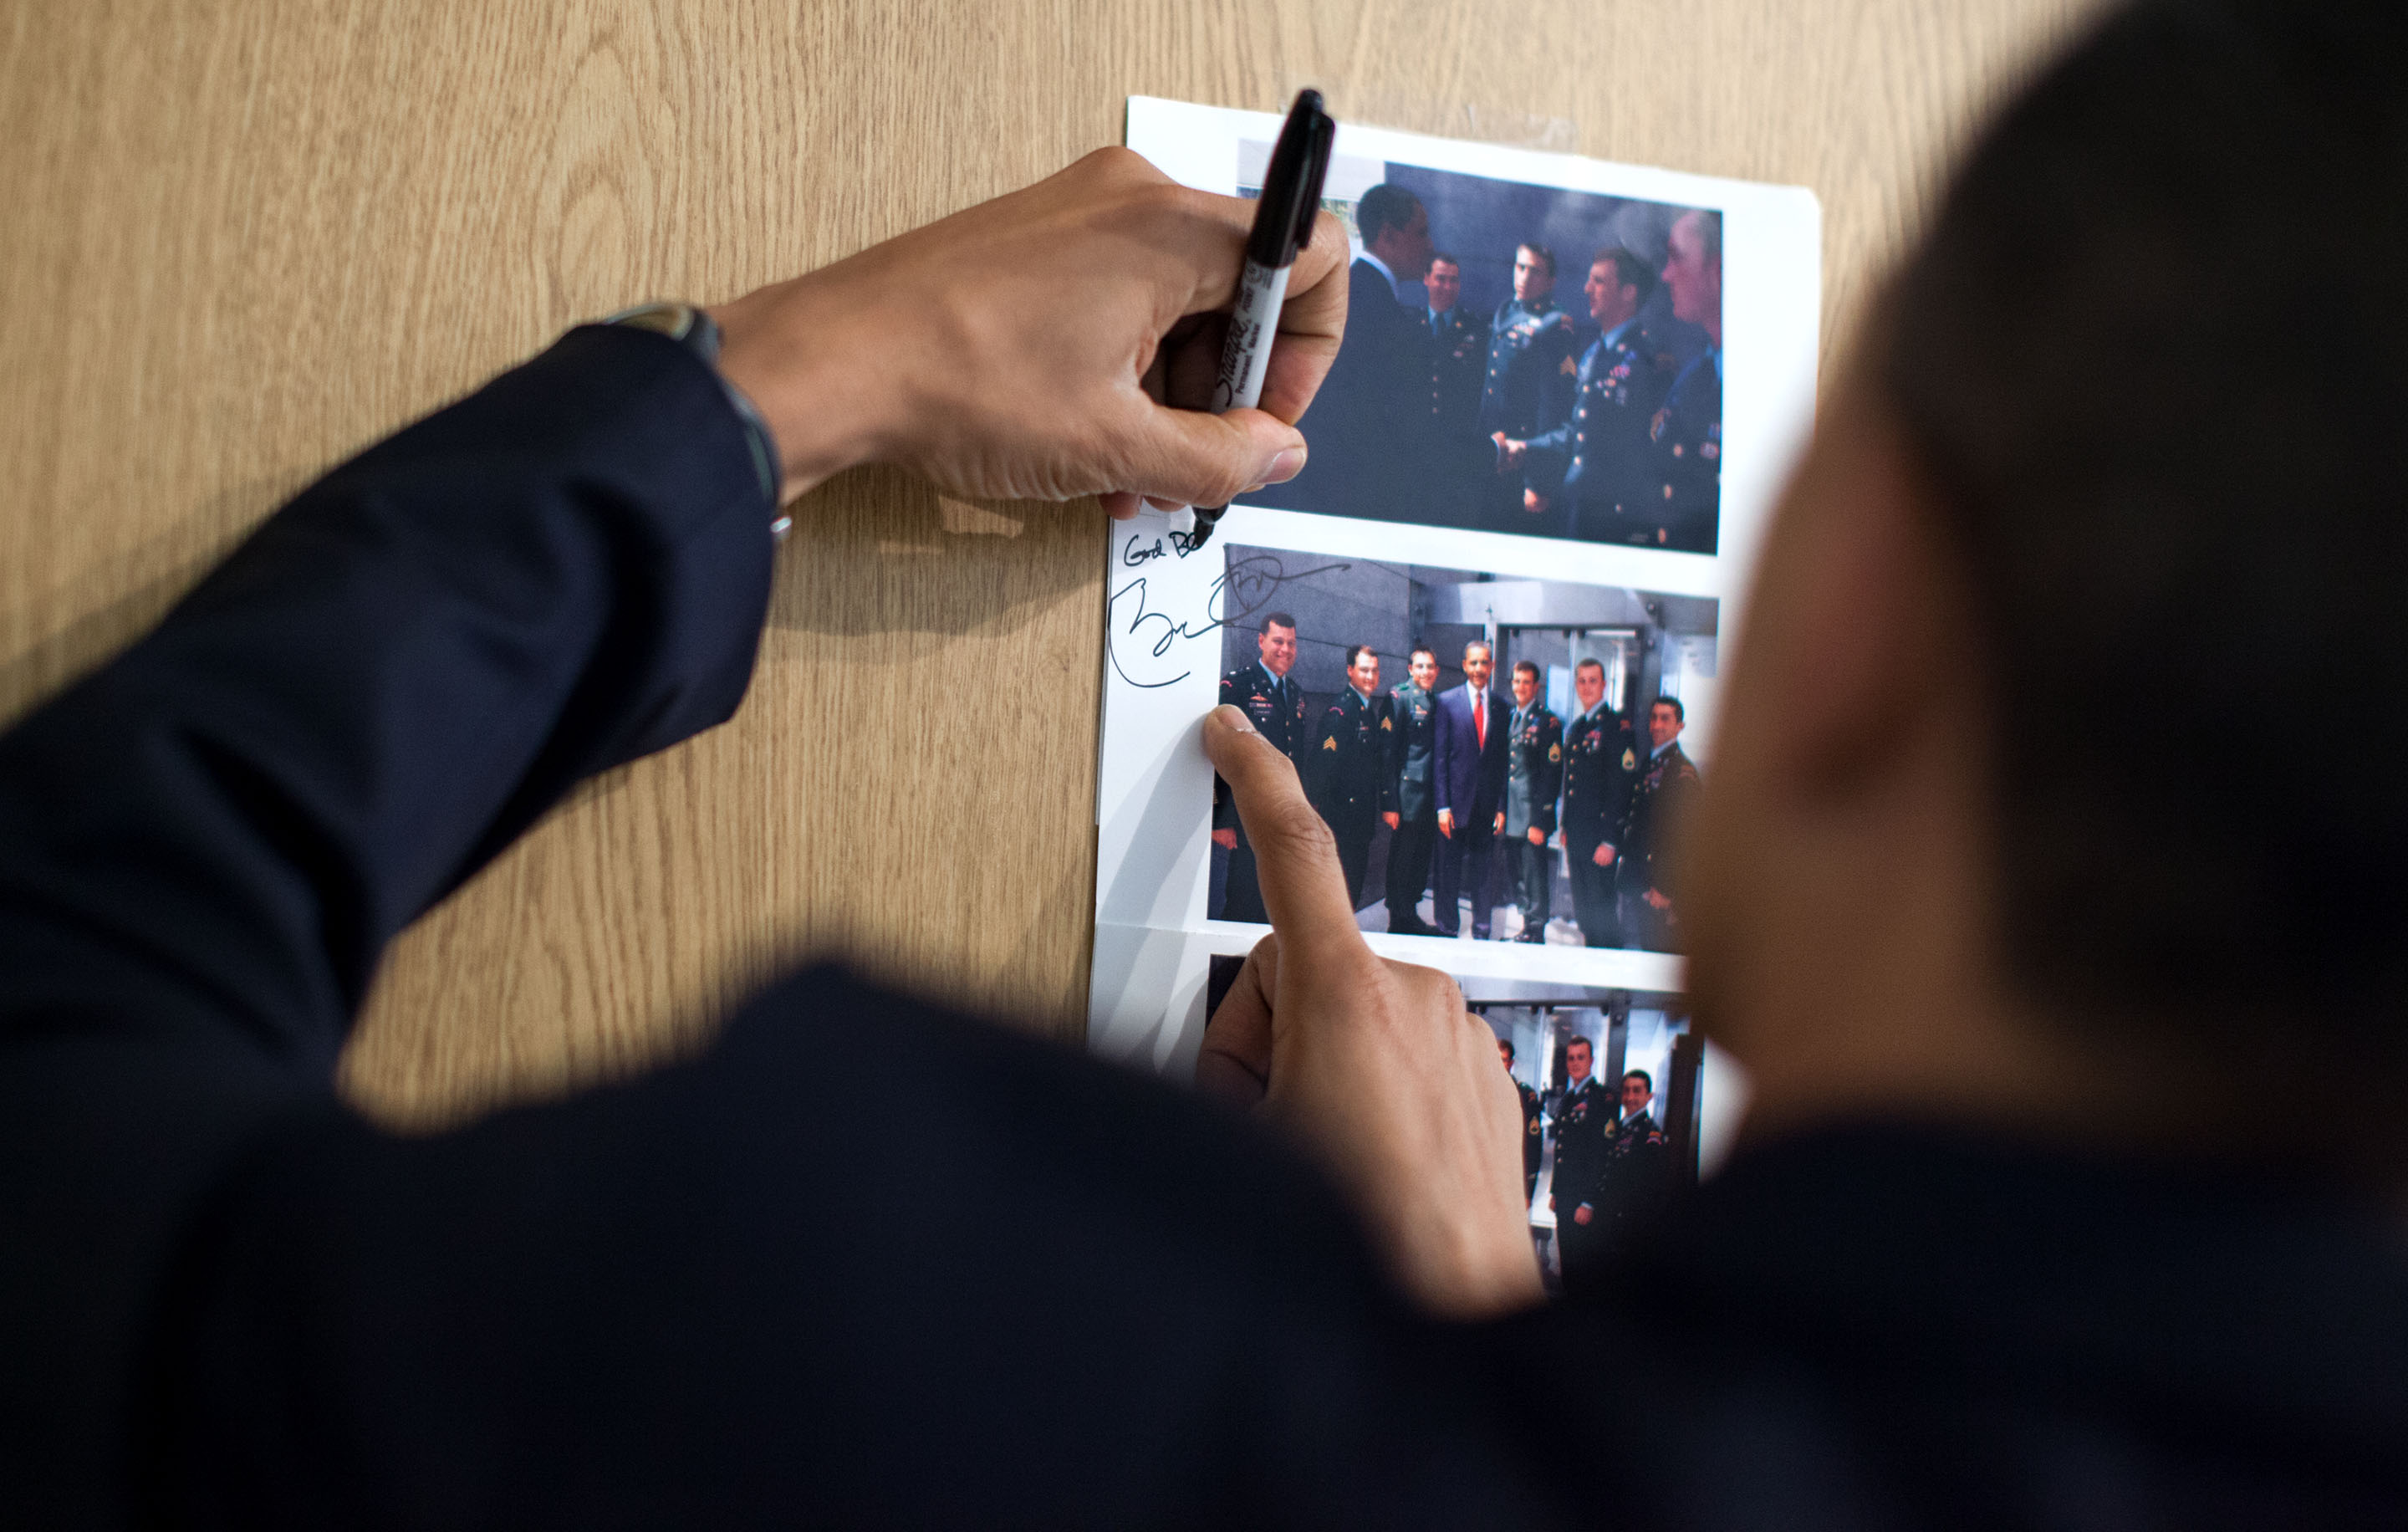 Feb. 28, 2010: The President signs a photo for Cory from their Normandy greeting. (Official White House Photo by Pete Souza)